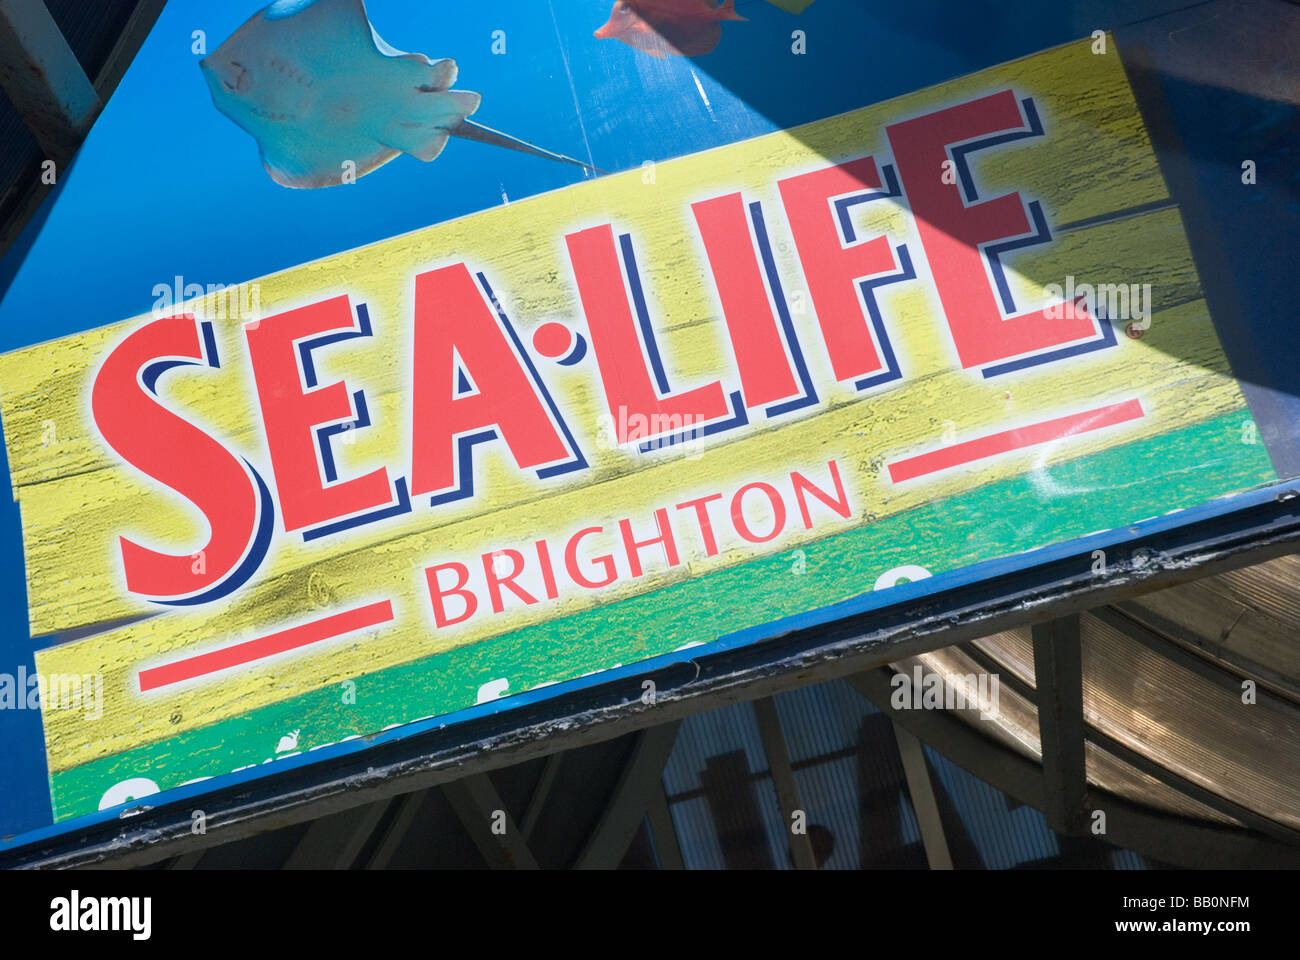 Sea Life centre Sign, Brighton, East Sussex, England, UK - Stock Image